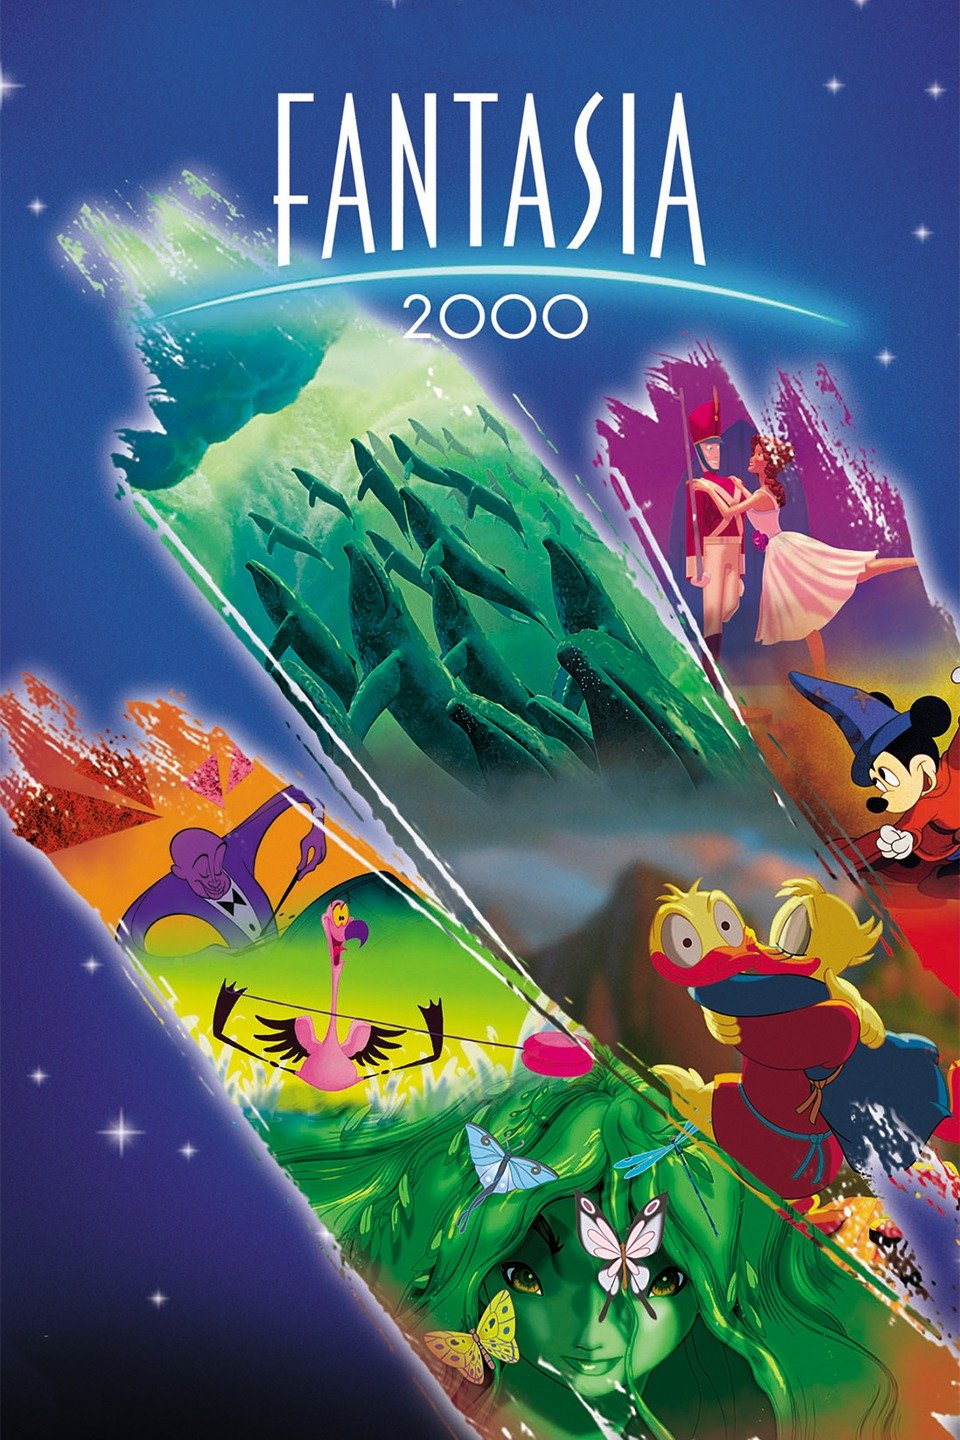 www.gstatic.com/tv/thumb/v22vodart/24503/p24503...